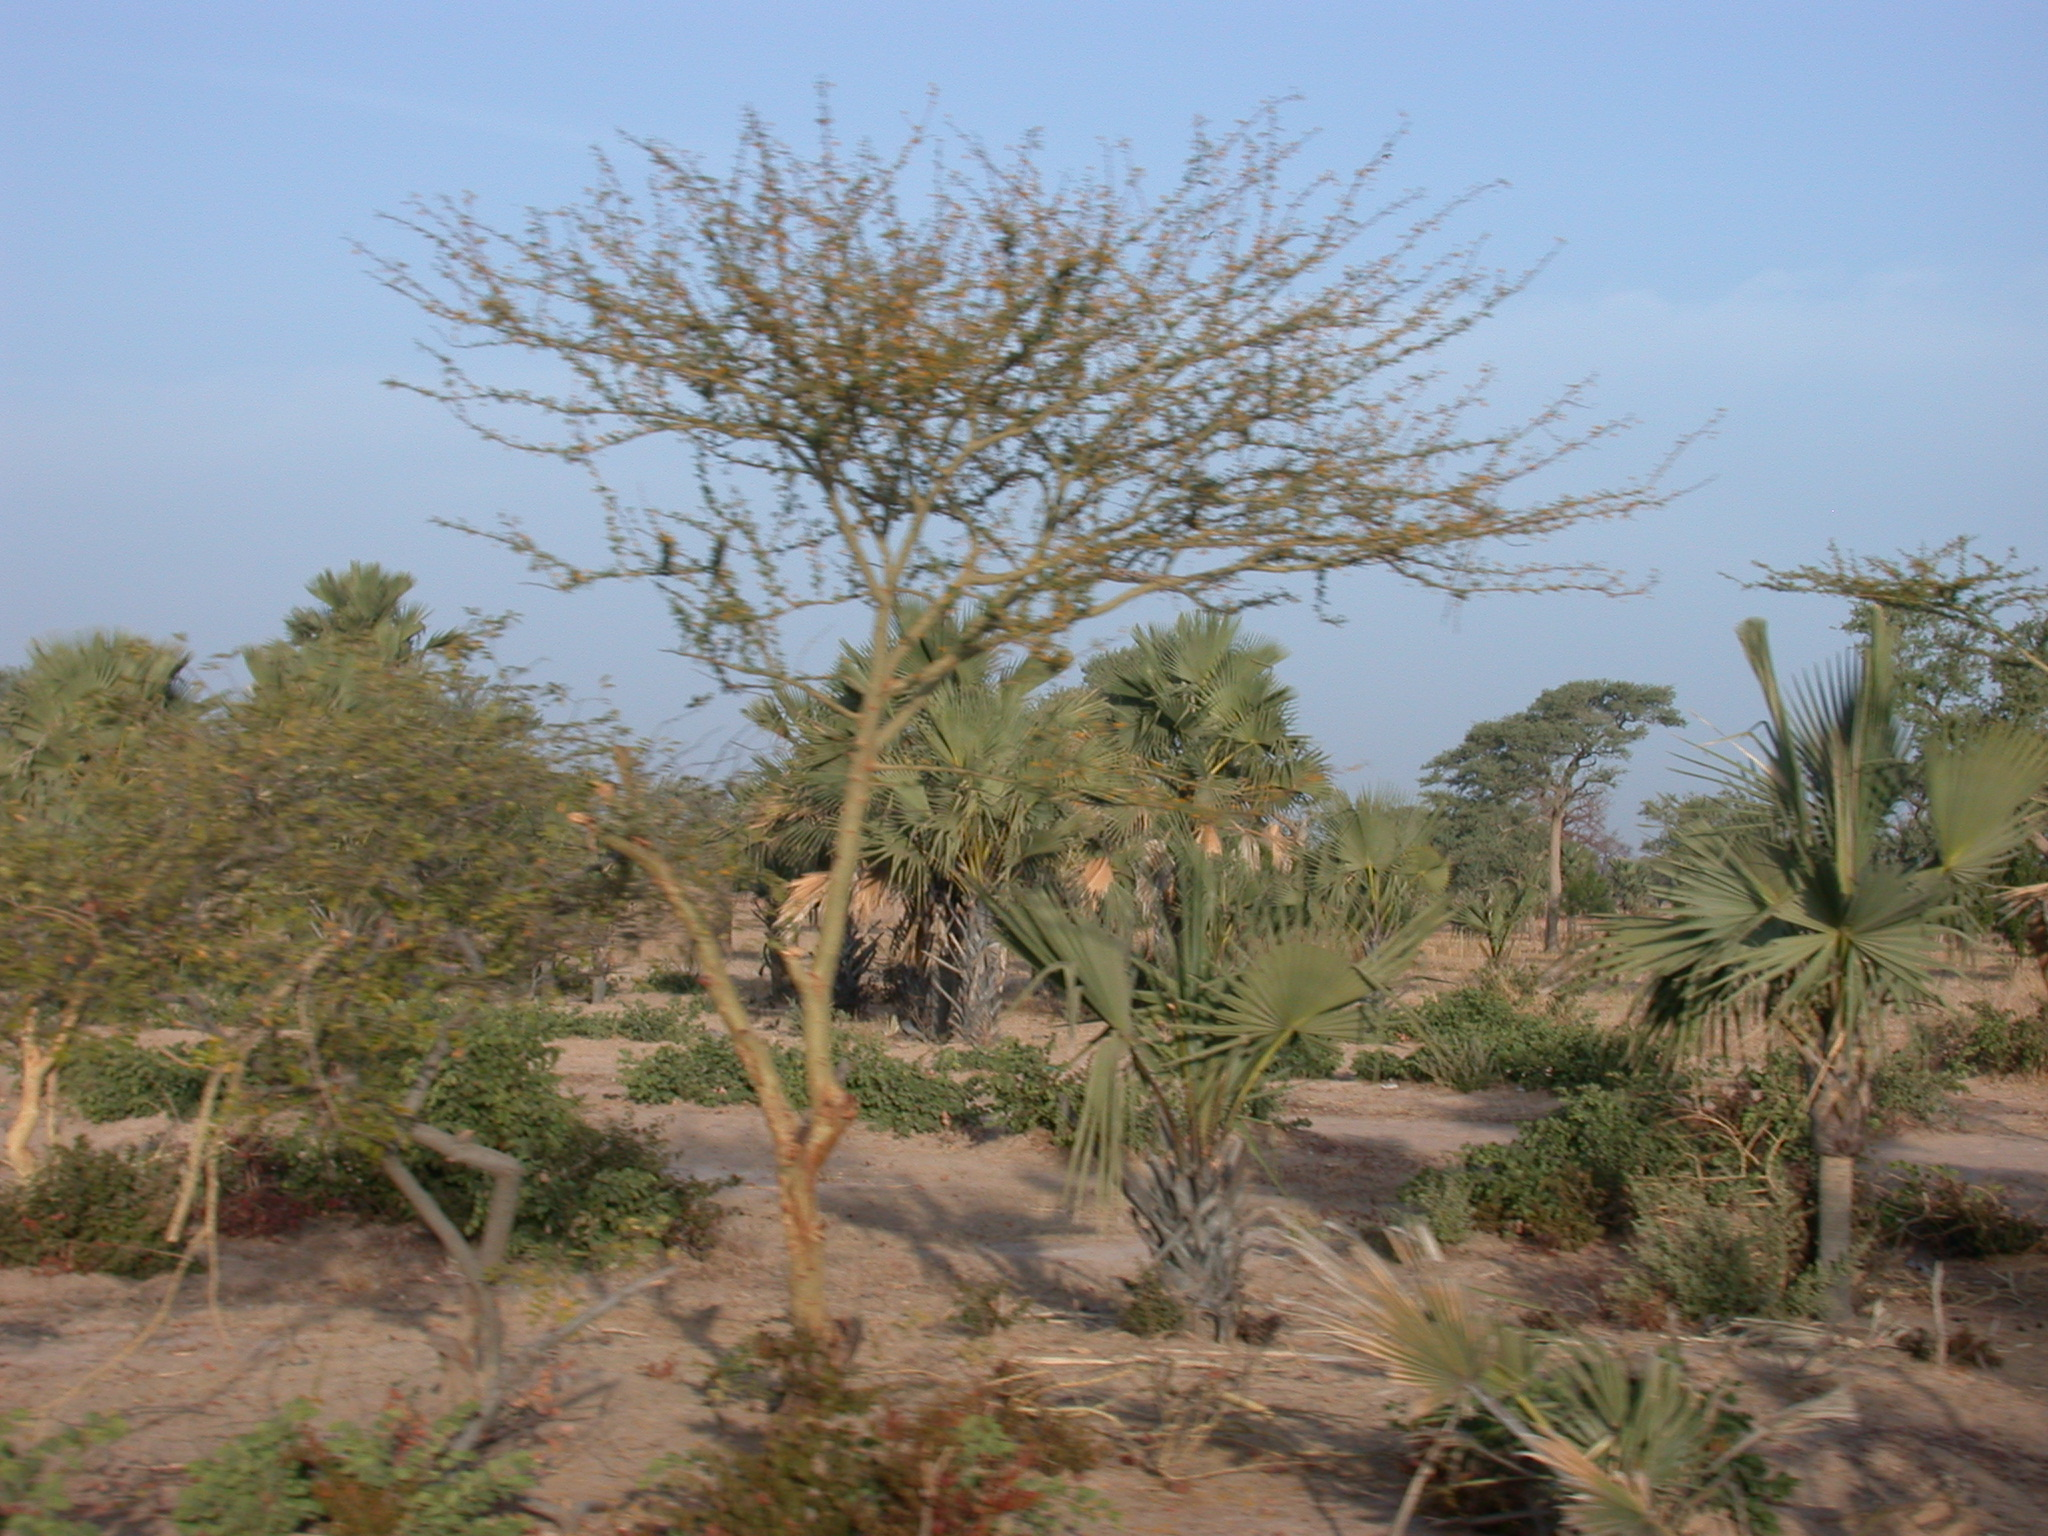 Scrub and Palms on Route From Timbuktu to Bamako, Mali